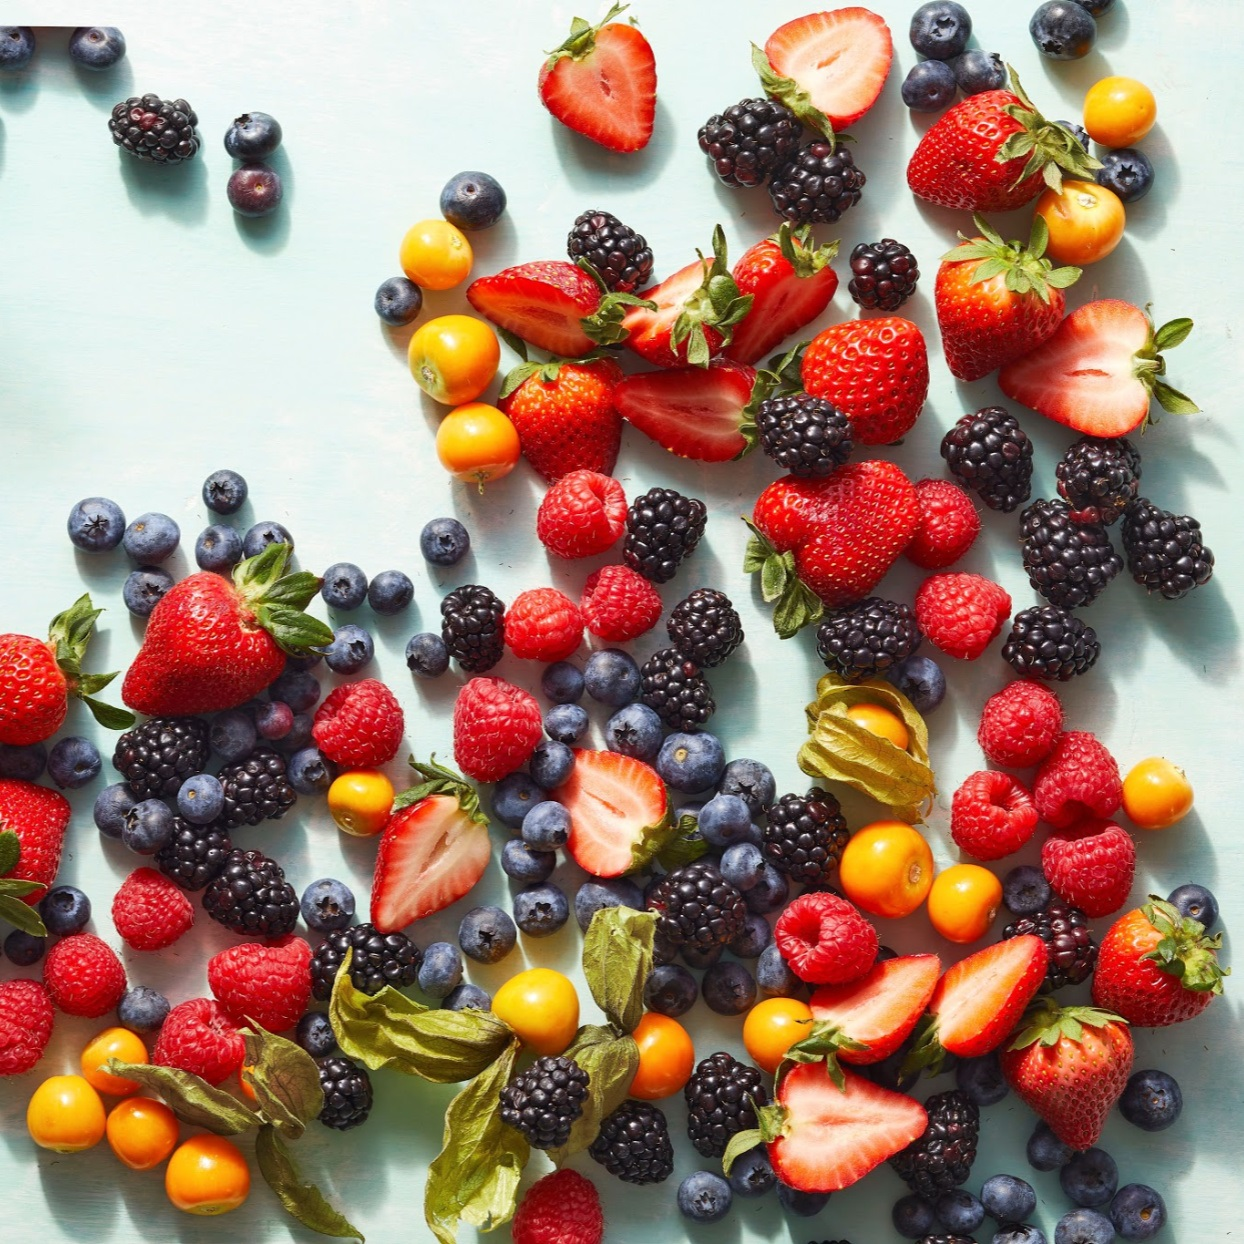 A variety of fresh summer berries